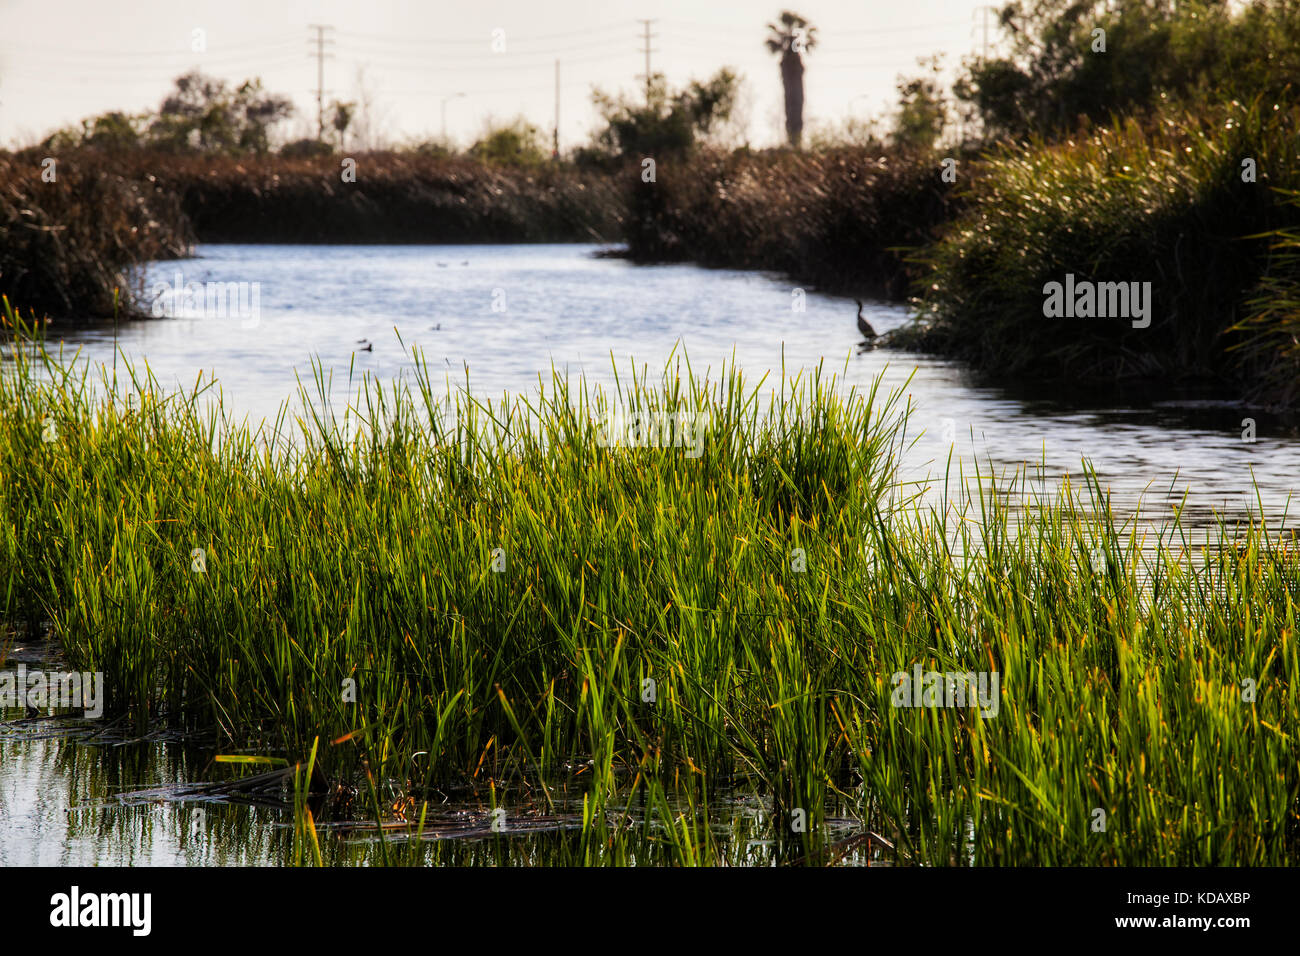 Ballona Wetlands Ecological Reserve, playa Vista, Los Angeles, Kalifornien, USA Stockbild